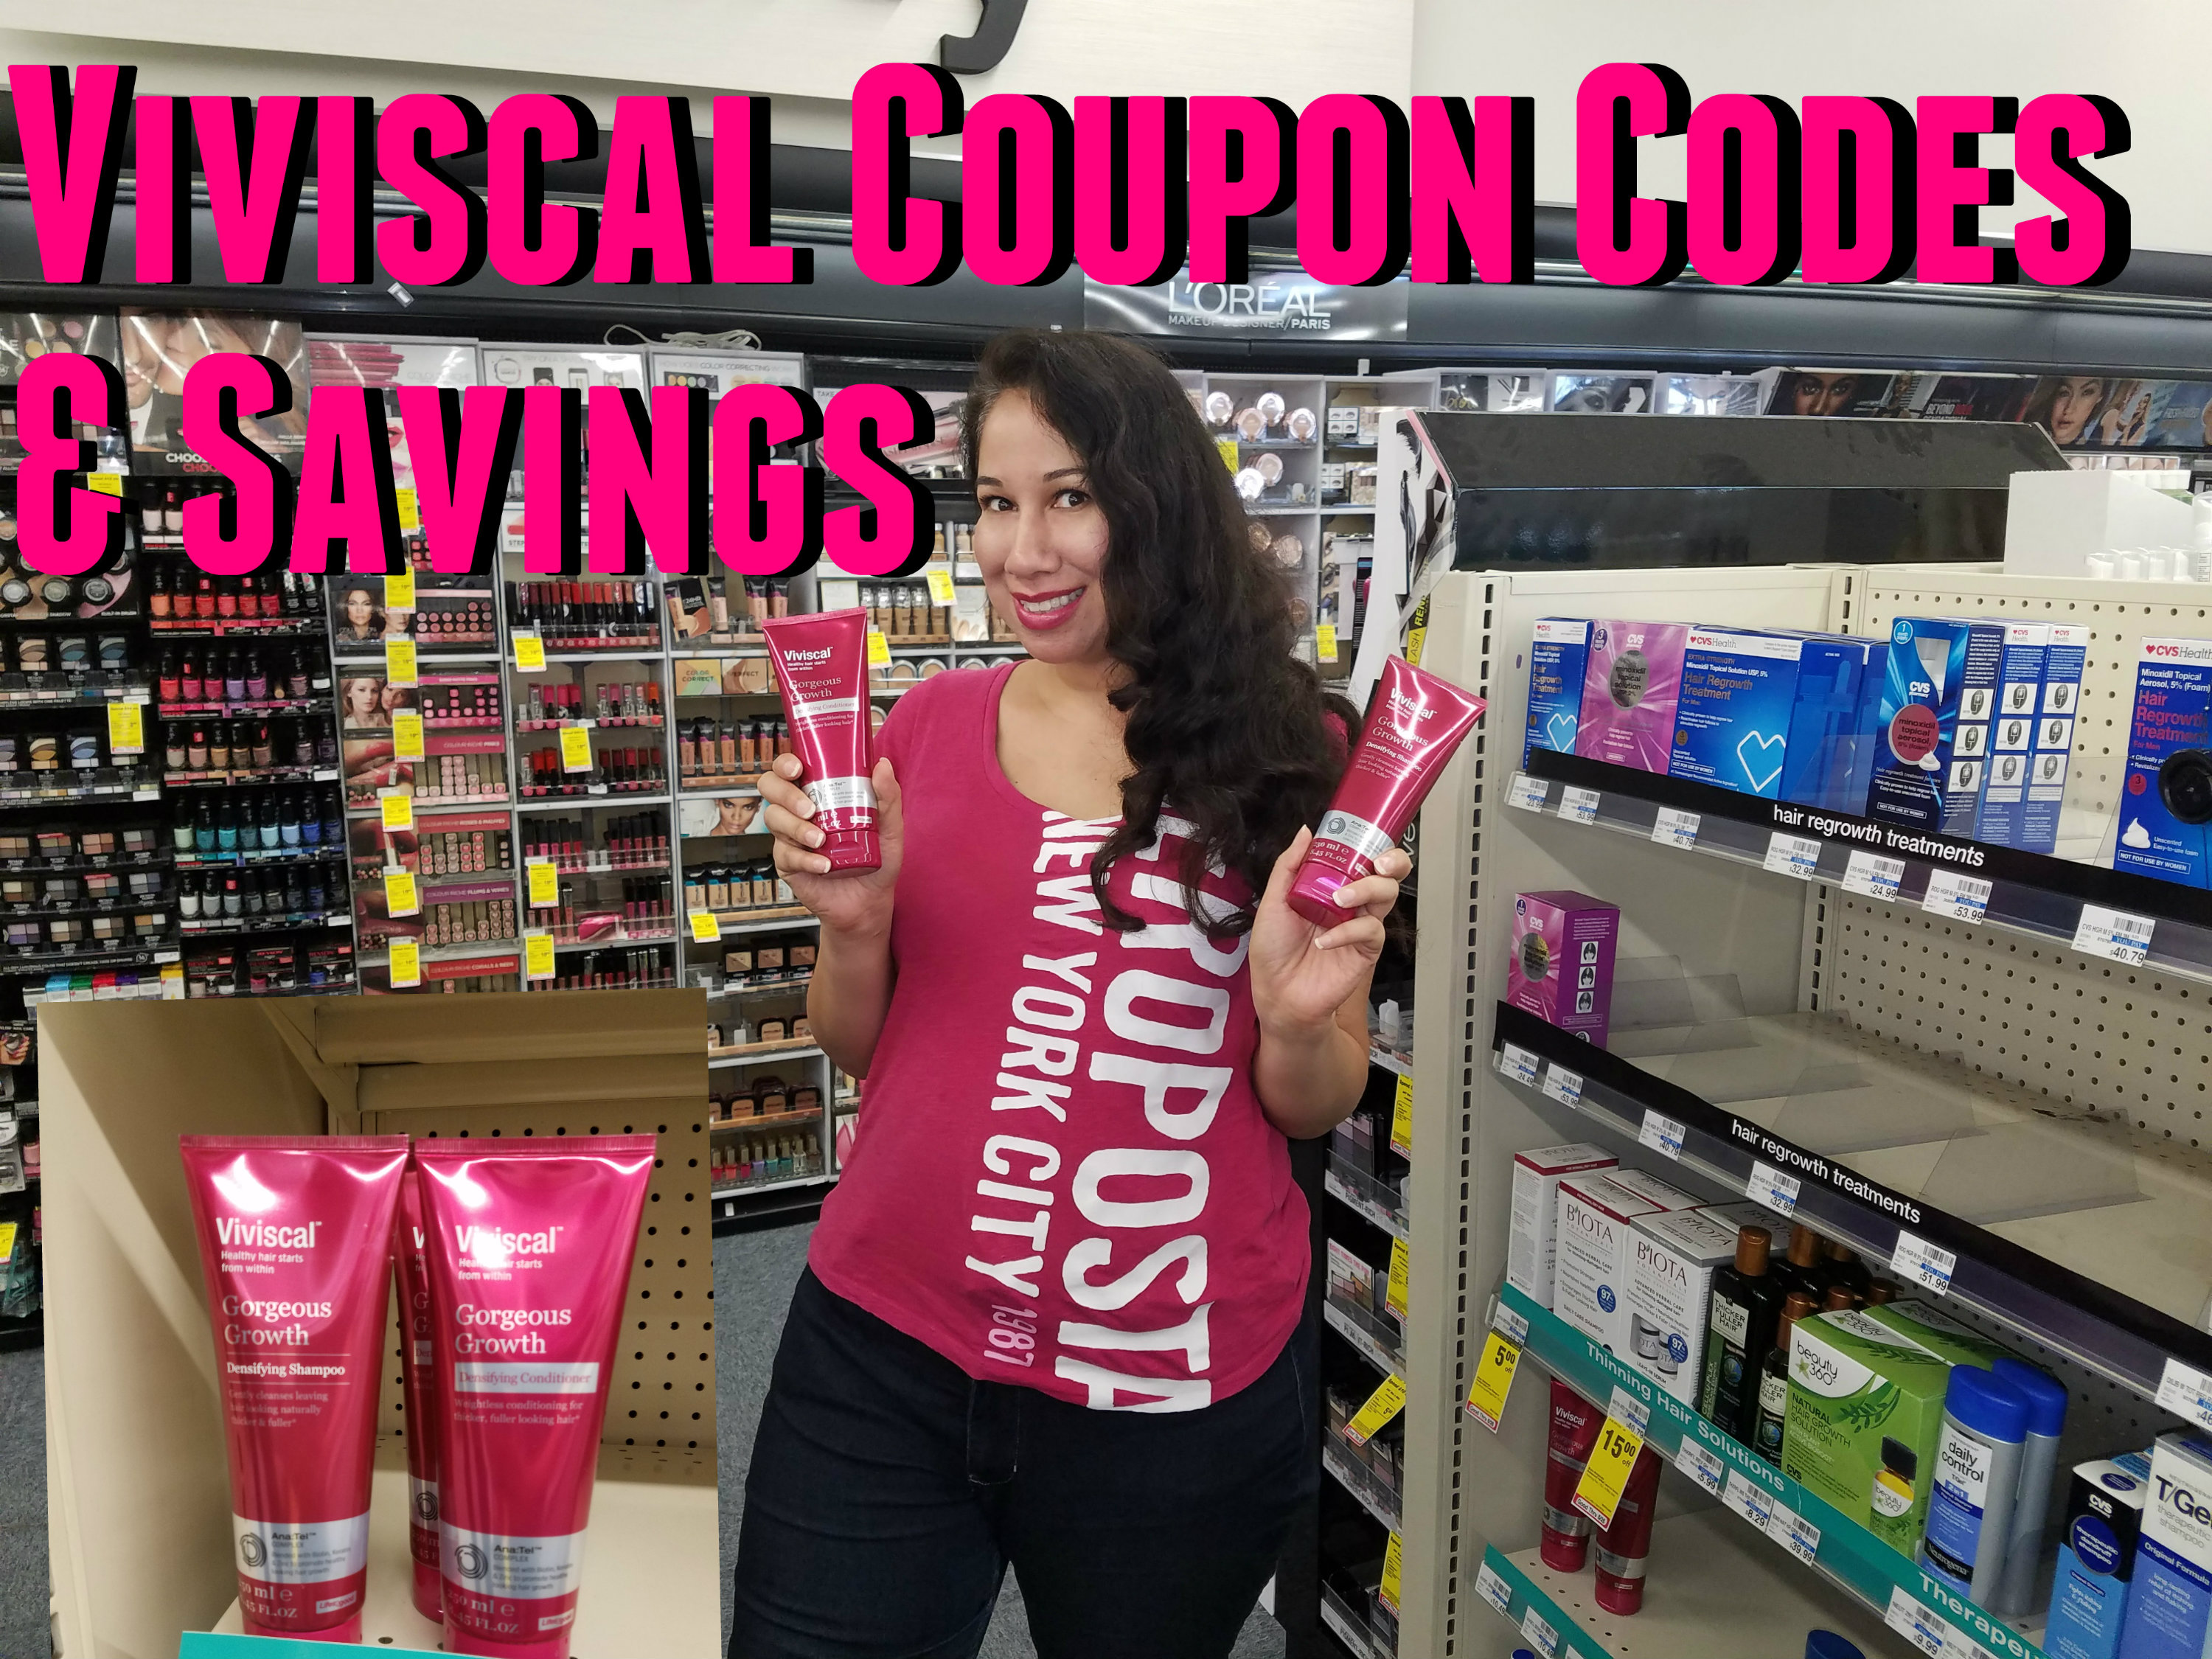 Viviscal Extra Strength has been scientifically proven to nourish thinning hair and promote existing hair growth.* Use Viviscal Extra Strength hair growth* supplement as part of the complete Viviscal range, which provides a unique two-dimensional hair care system fusing the best of both worlds.